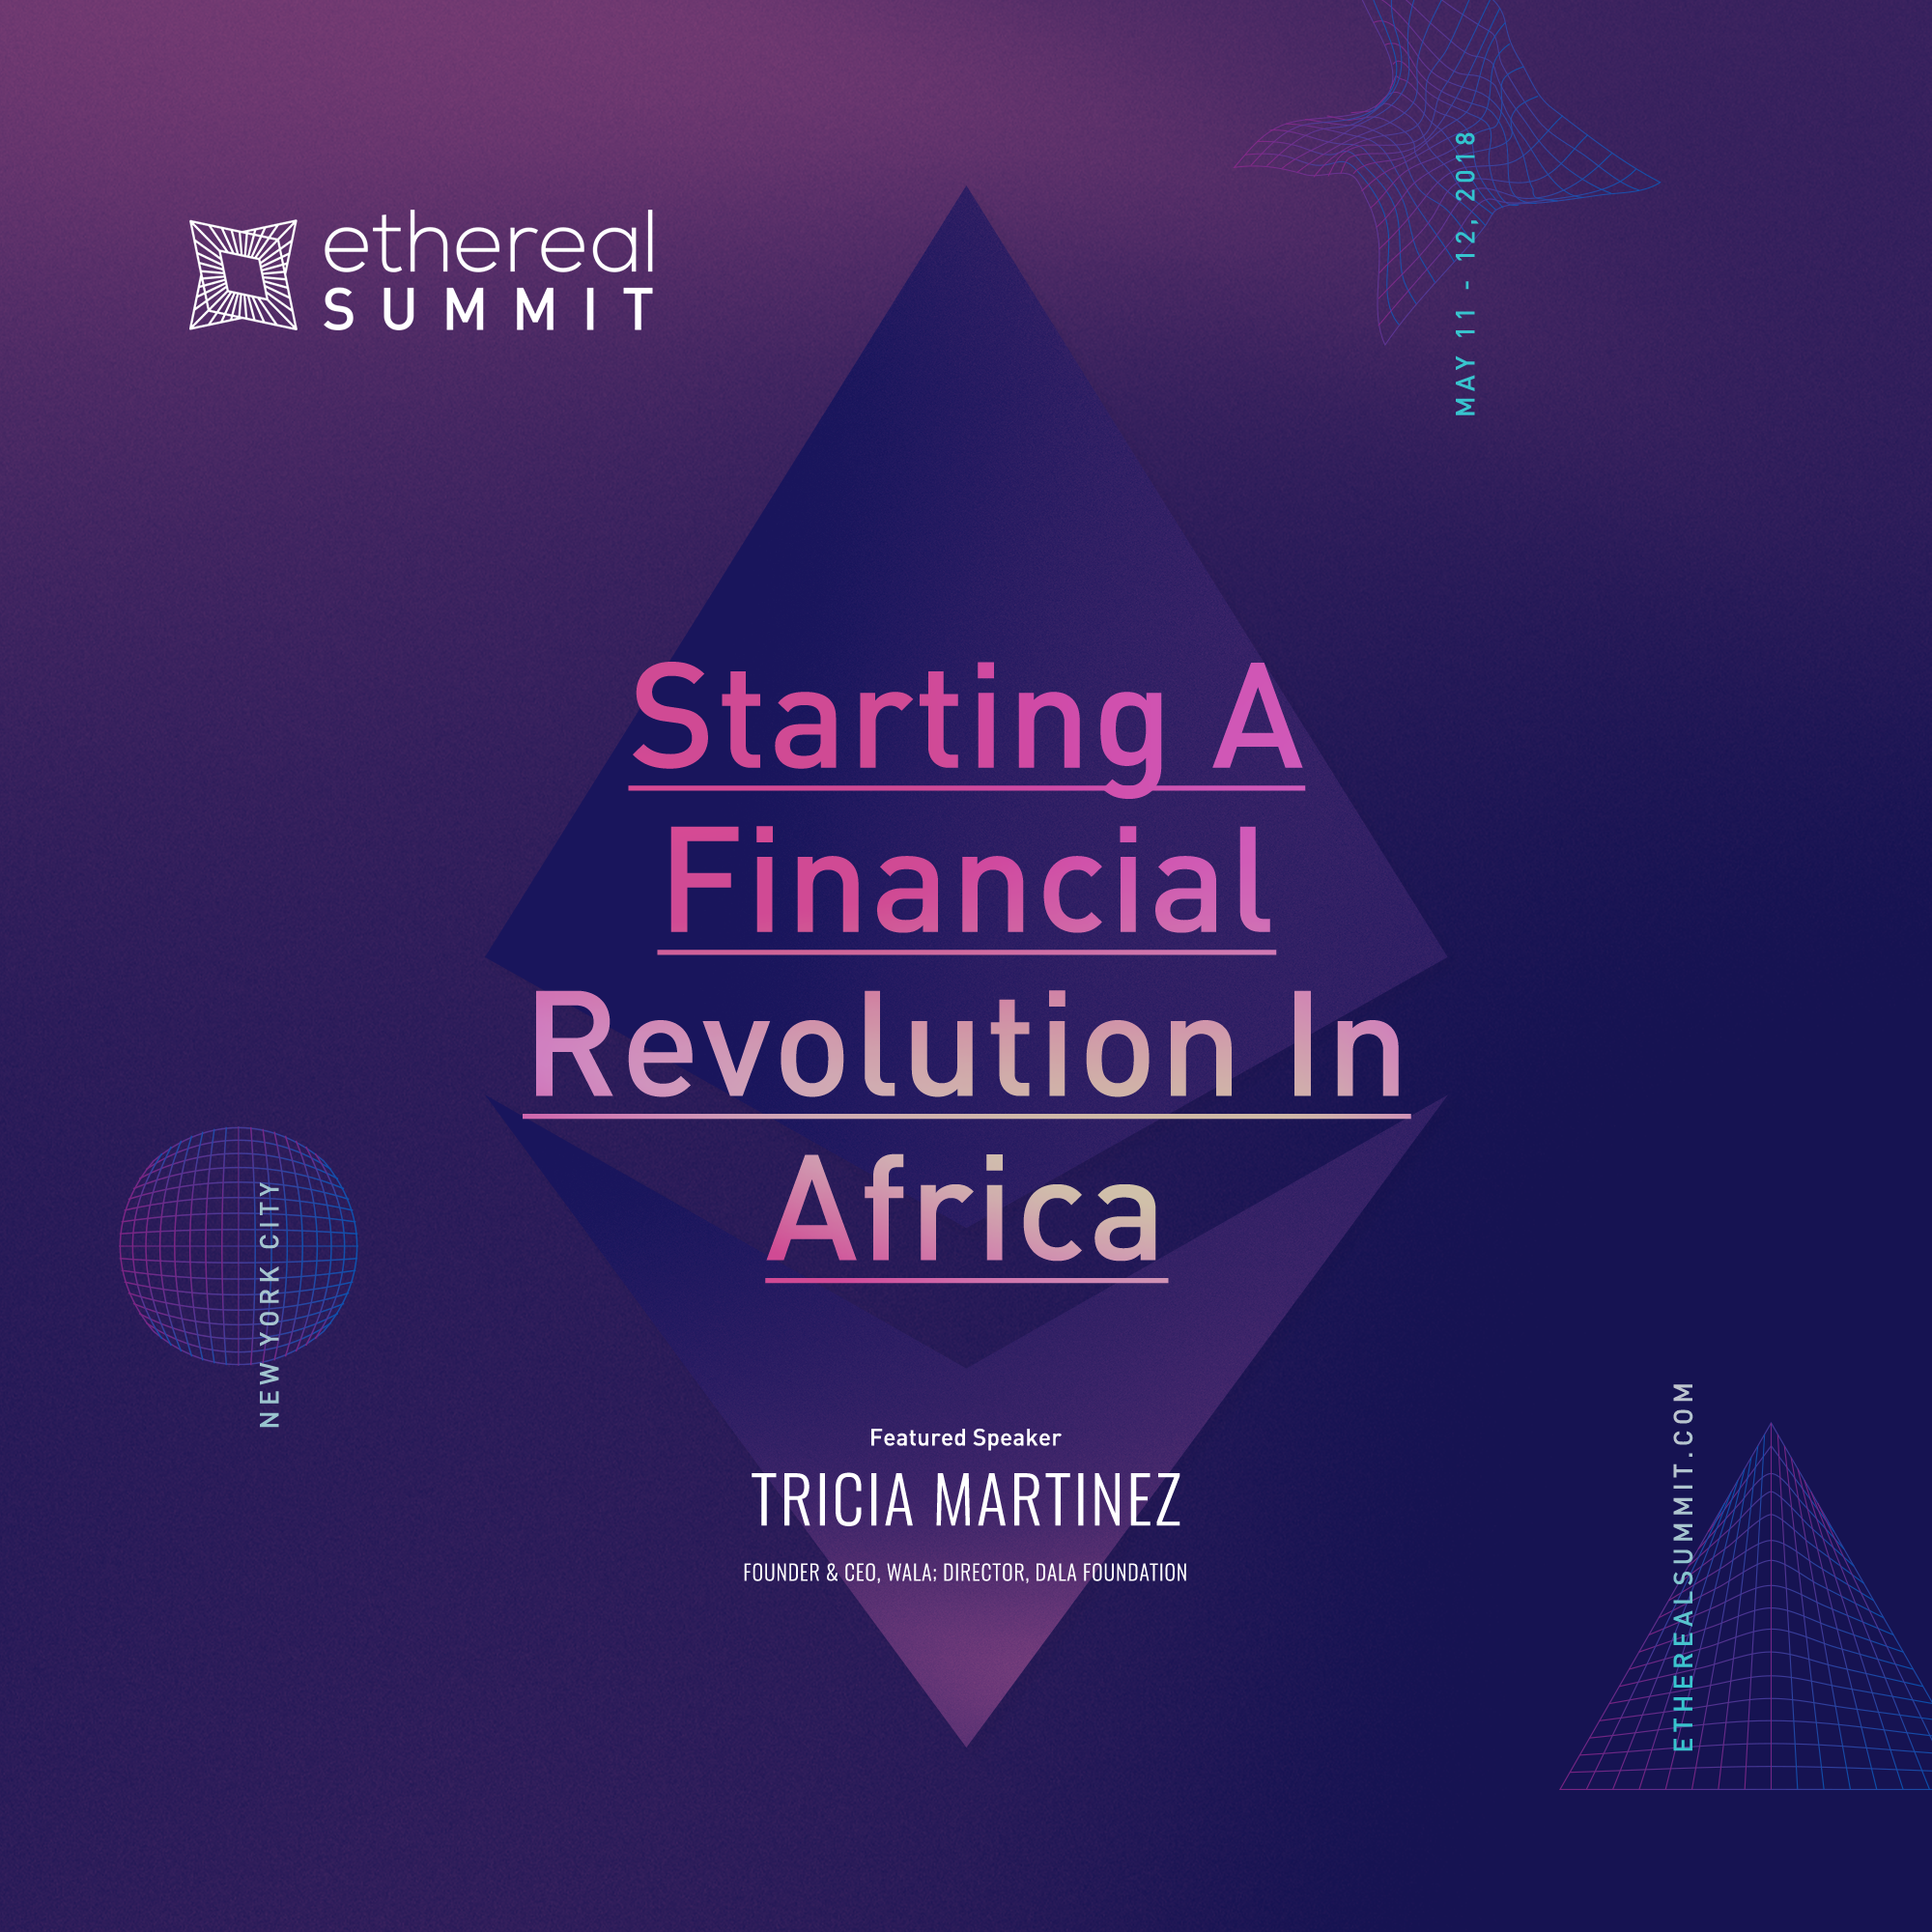 Starting A Financial Revolution in Africa